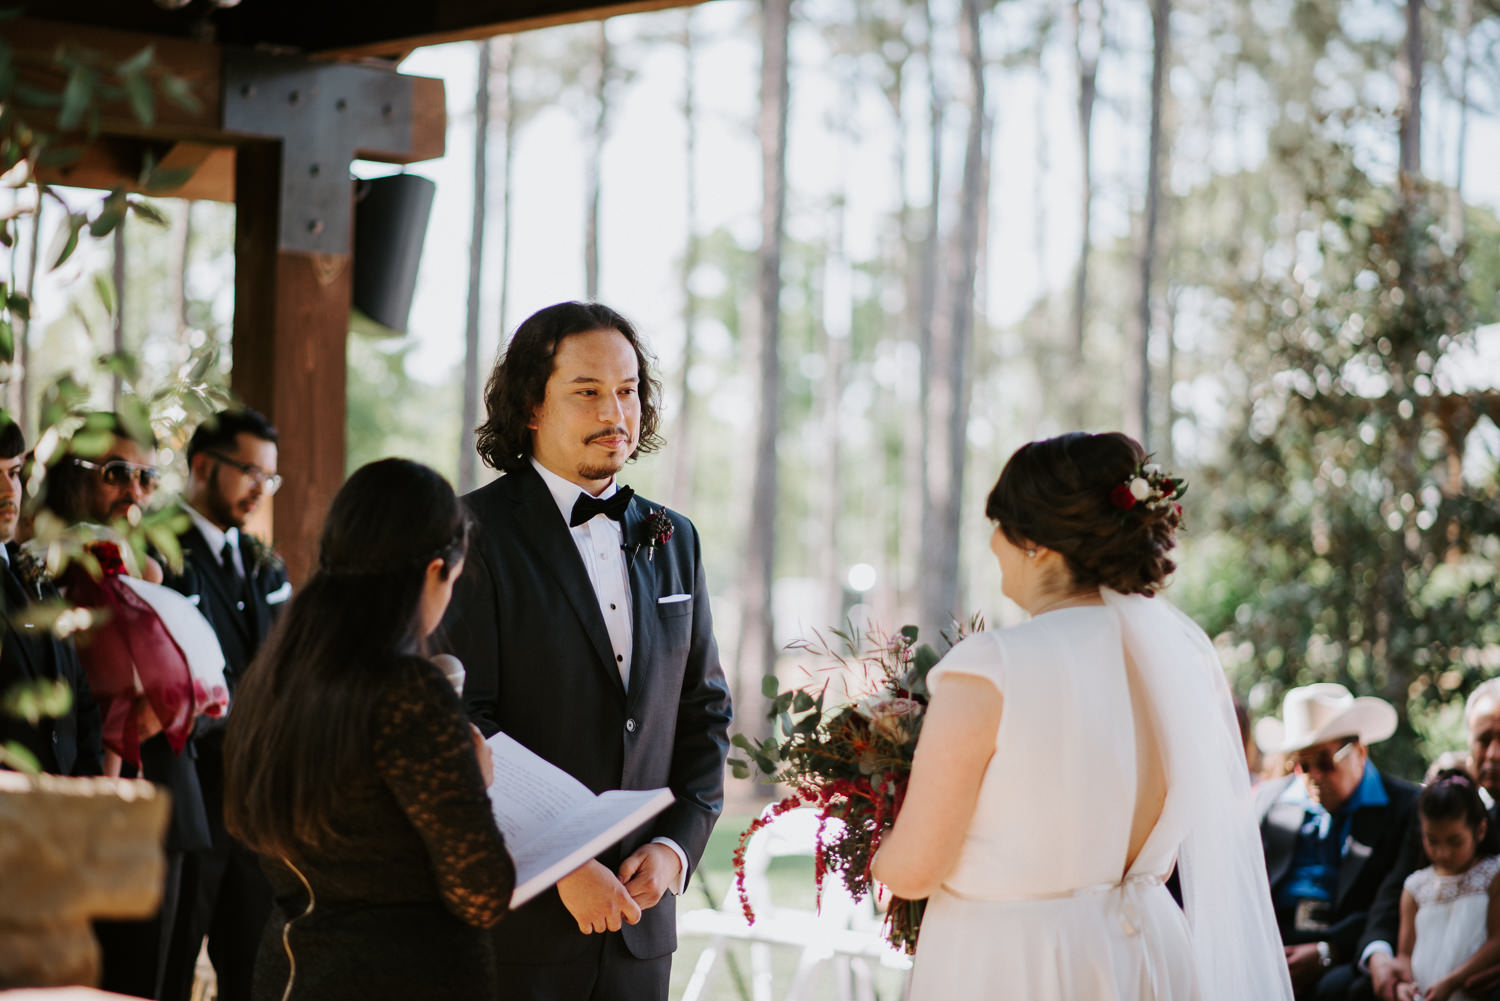 Wedding Ceremony at The Springs in The Woodlands